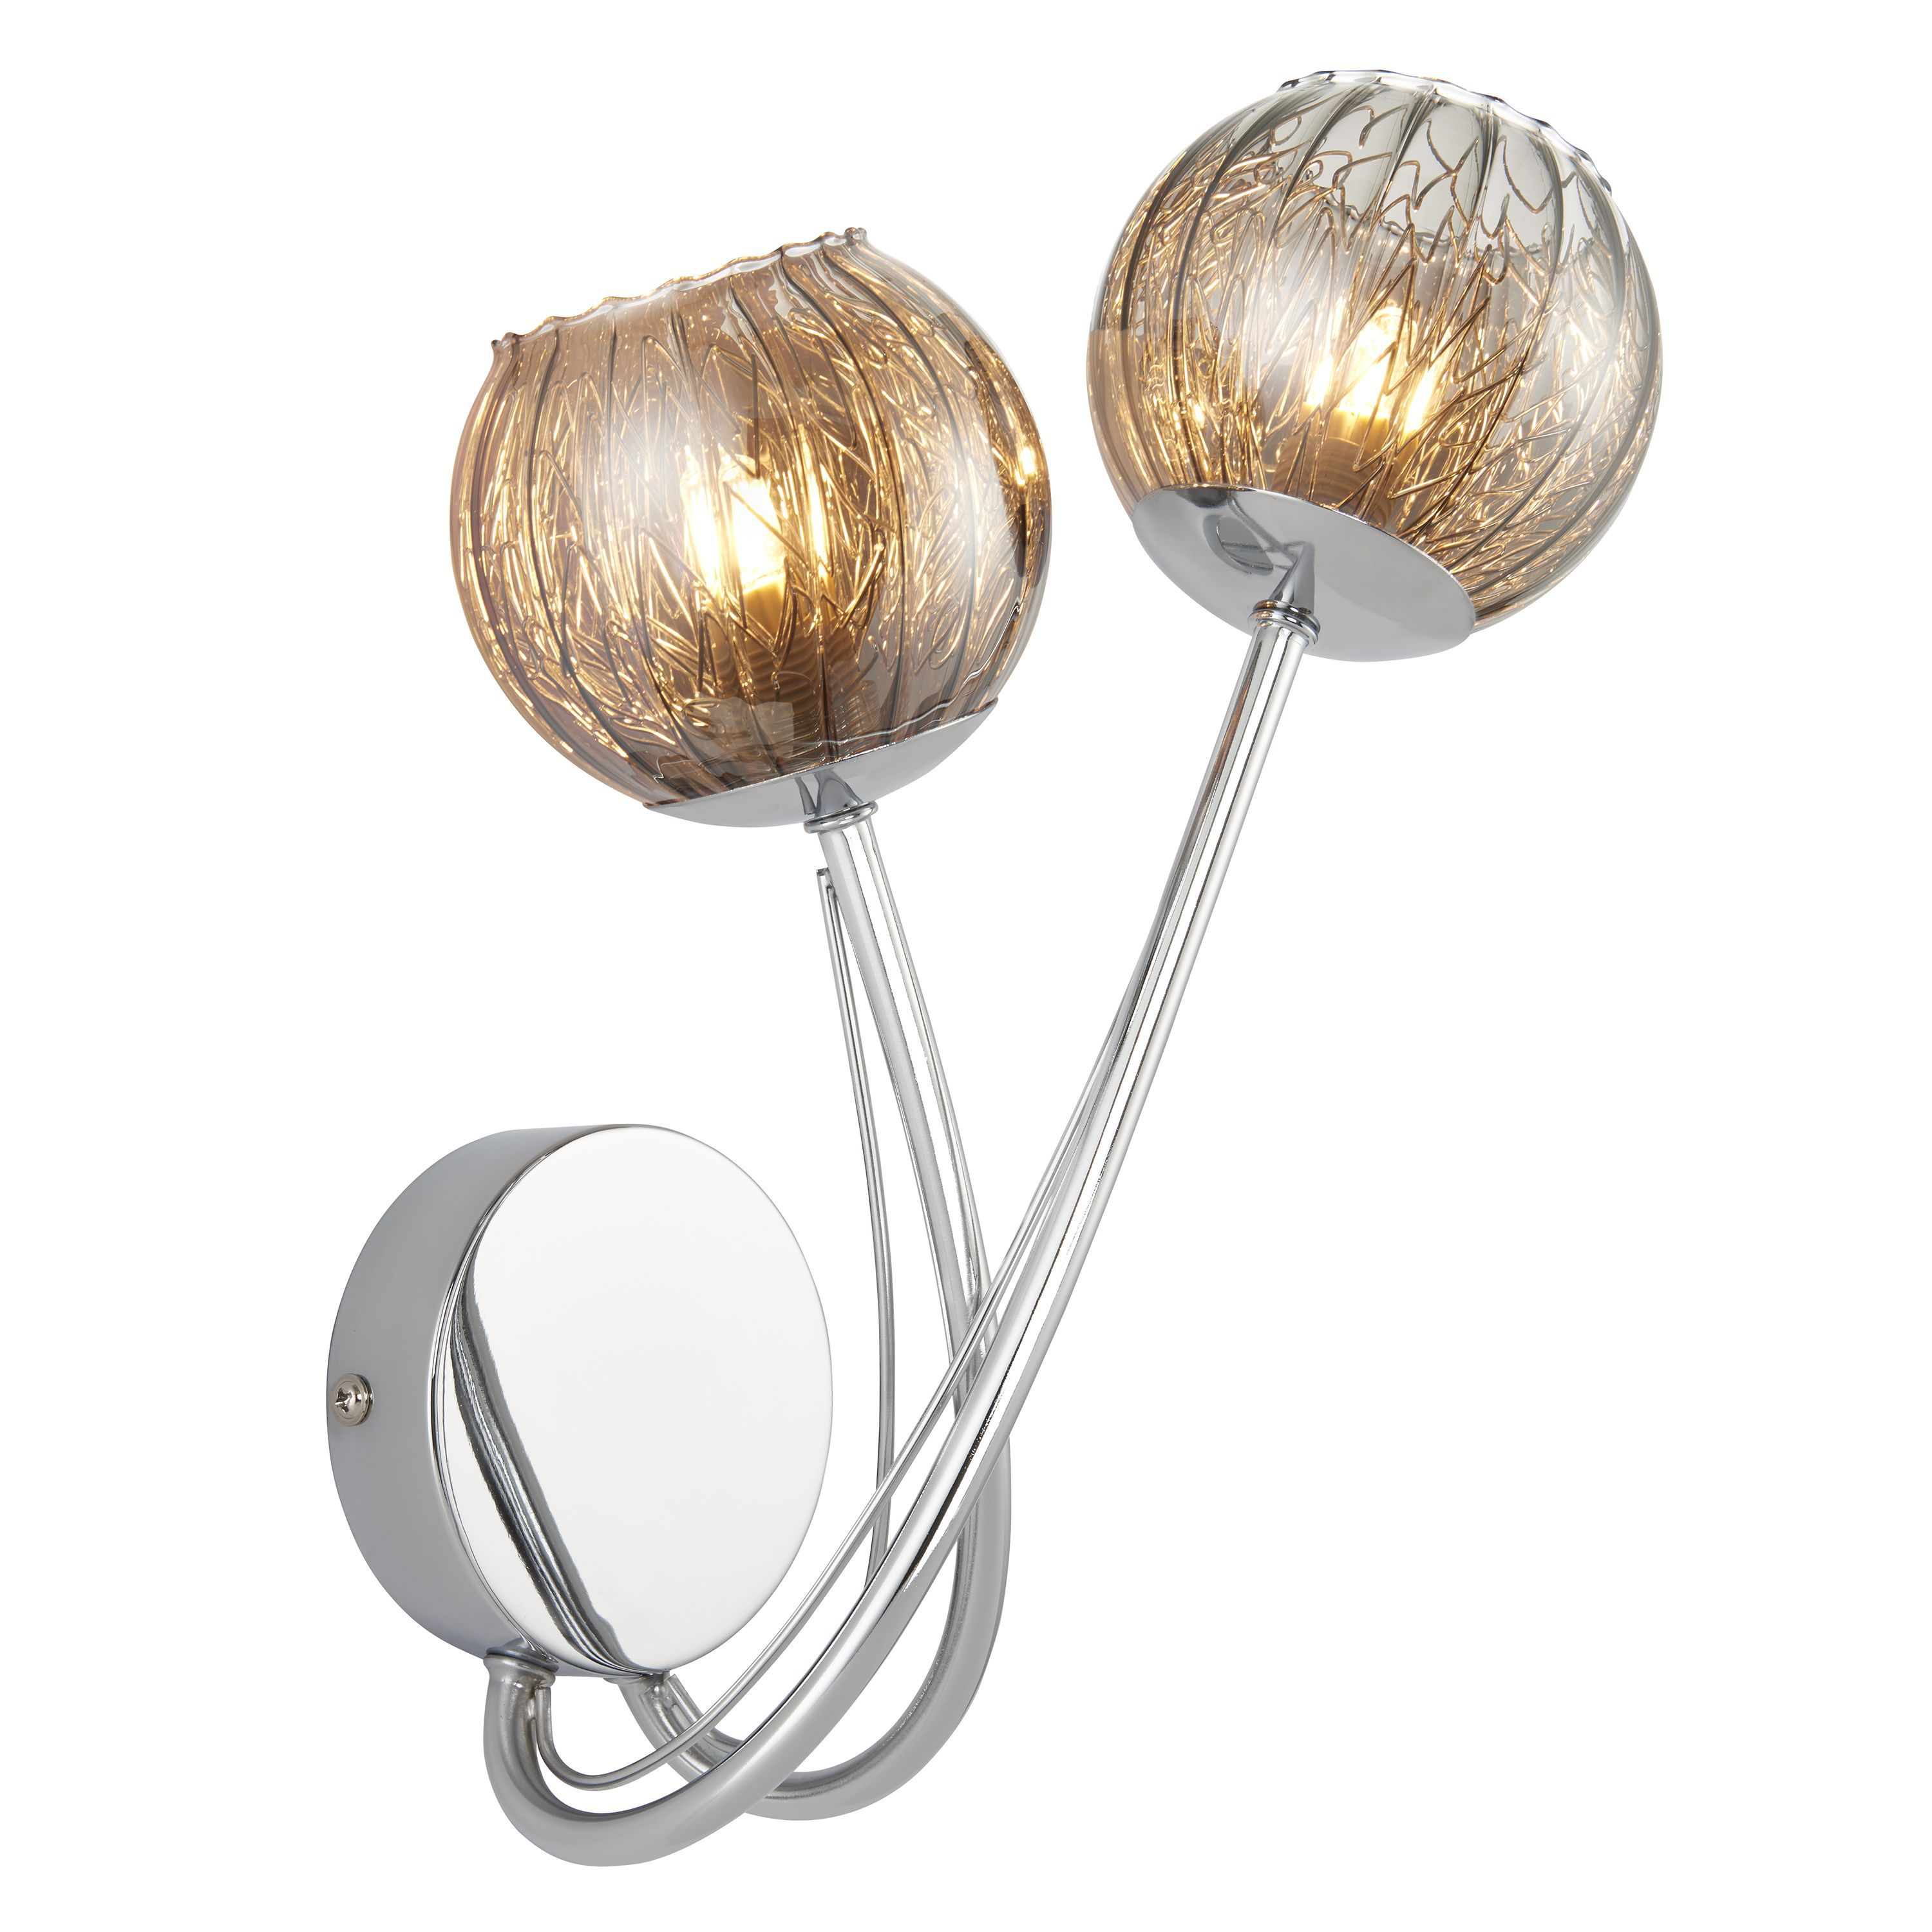 Roset Chrome Effect 2 Lamp Wall Light Departments DIY at B&Q